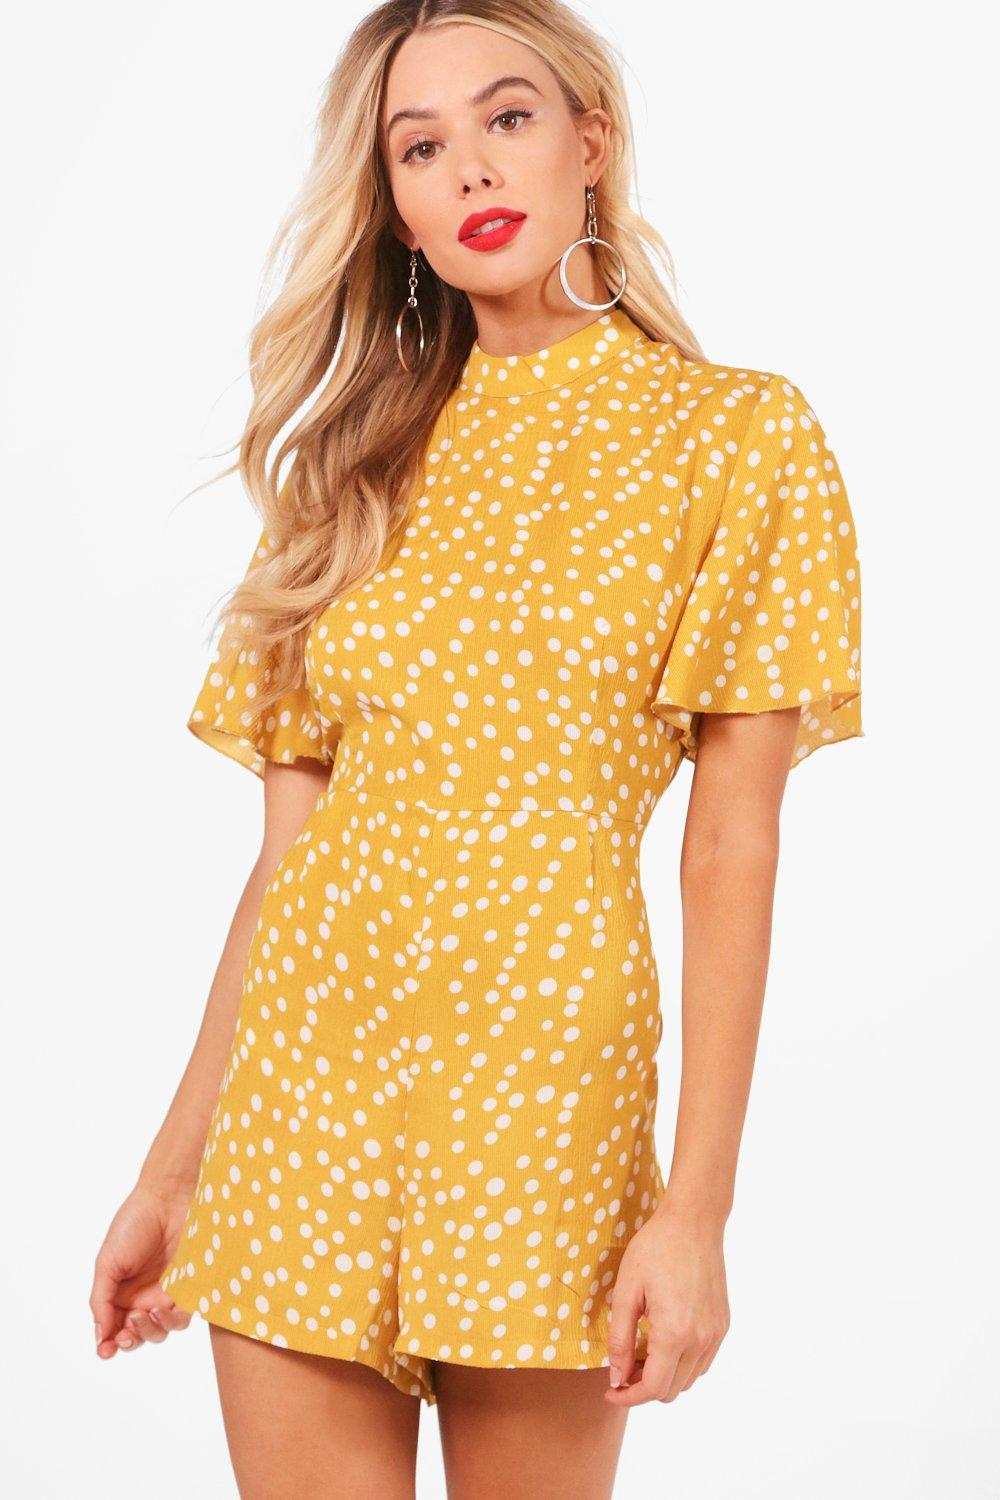 Vintage Rompers, Playsuits | Retro, Pin Up, Rockabilly Playsuits Womens Polka Dot Flute Sleeve Romper - Yellow - 12 $18.00 AT vintagedancer.com